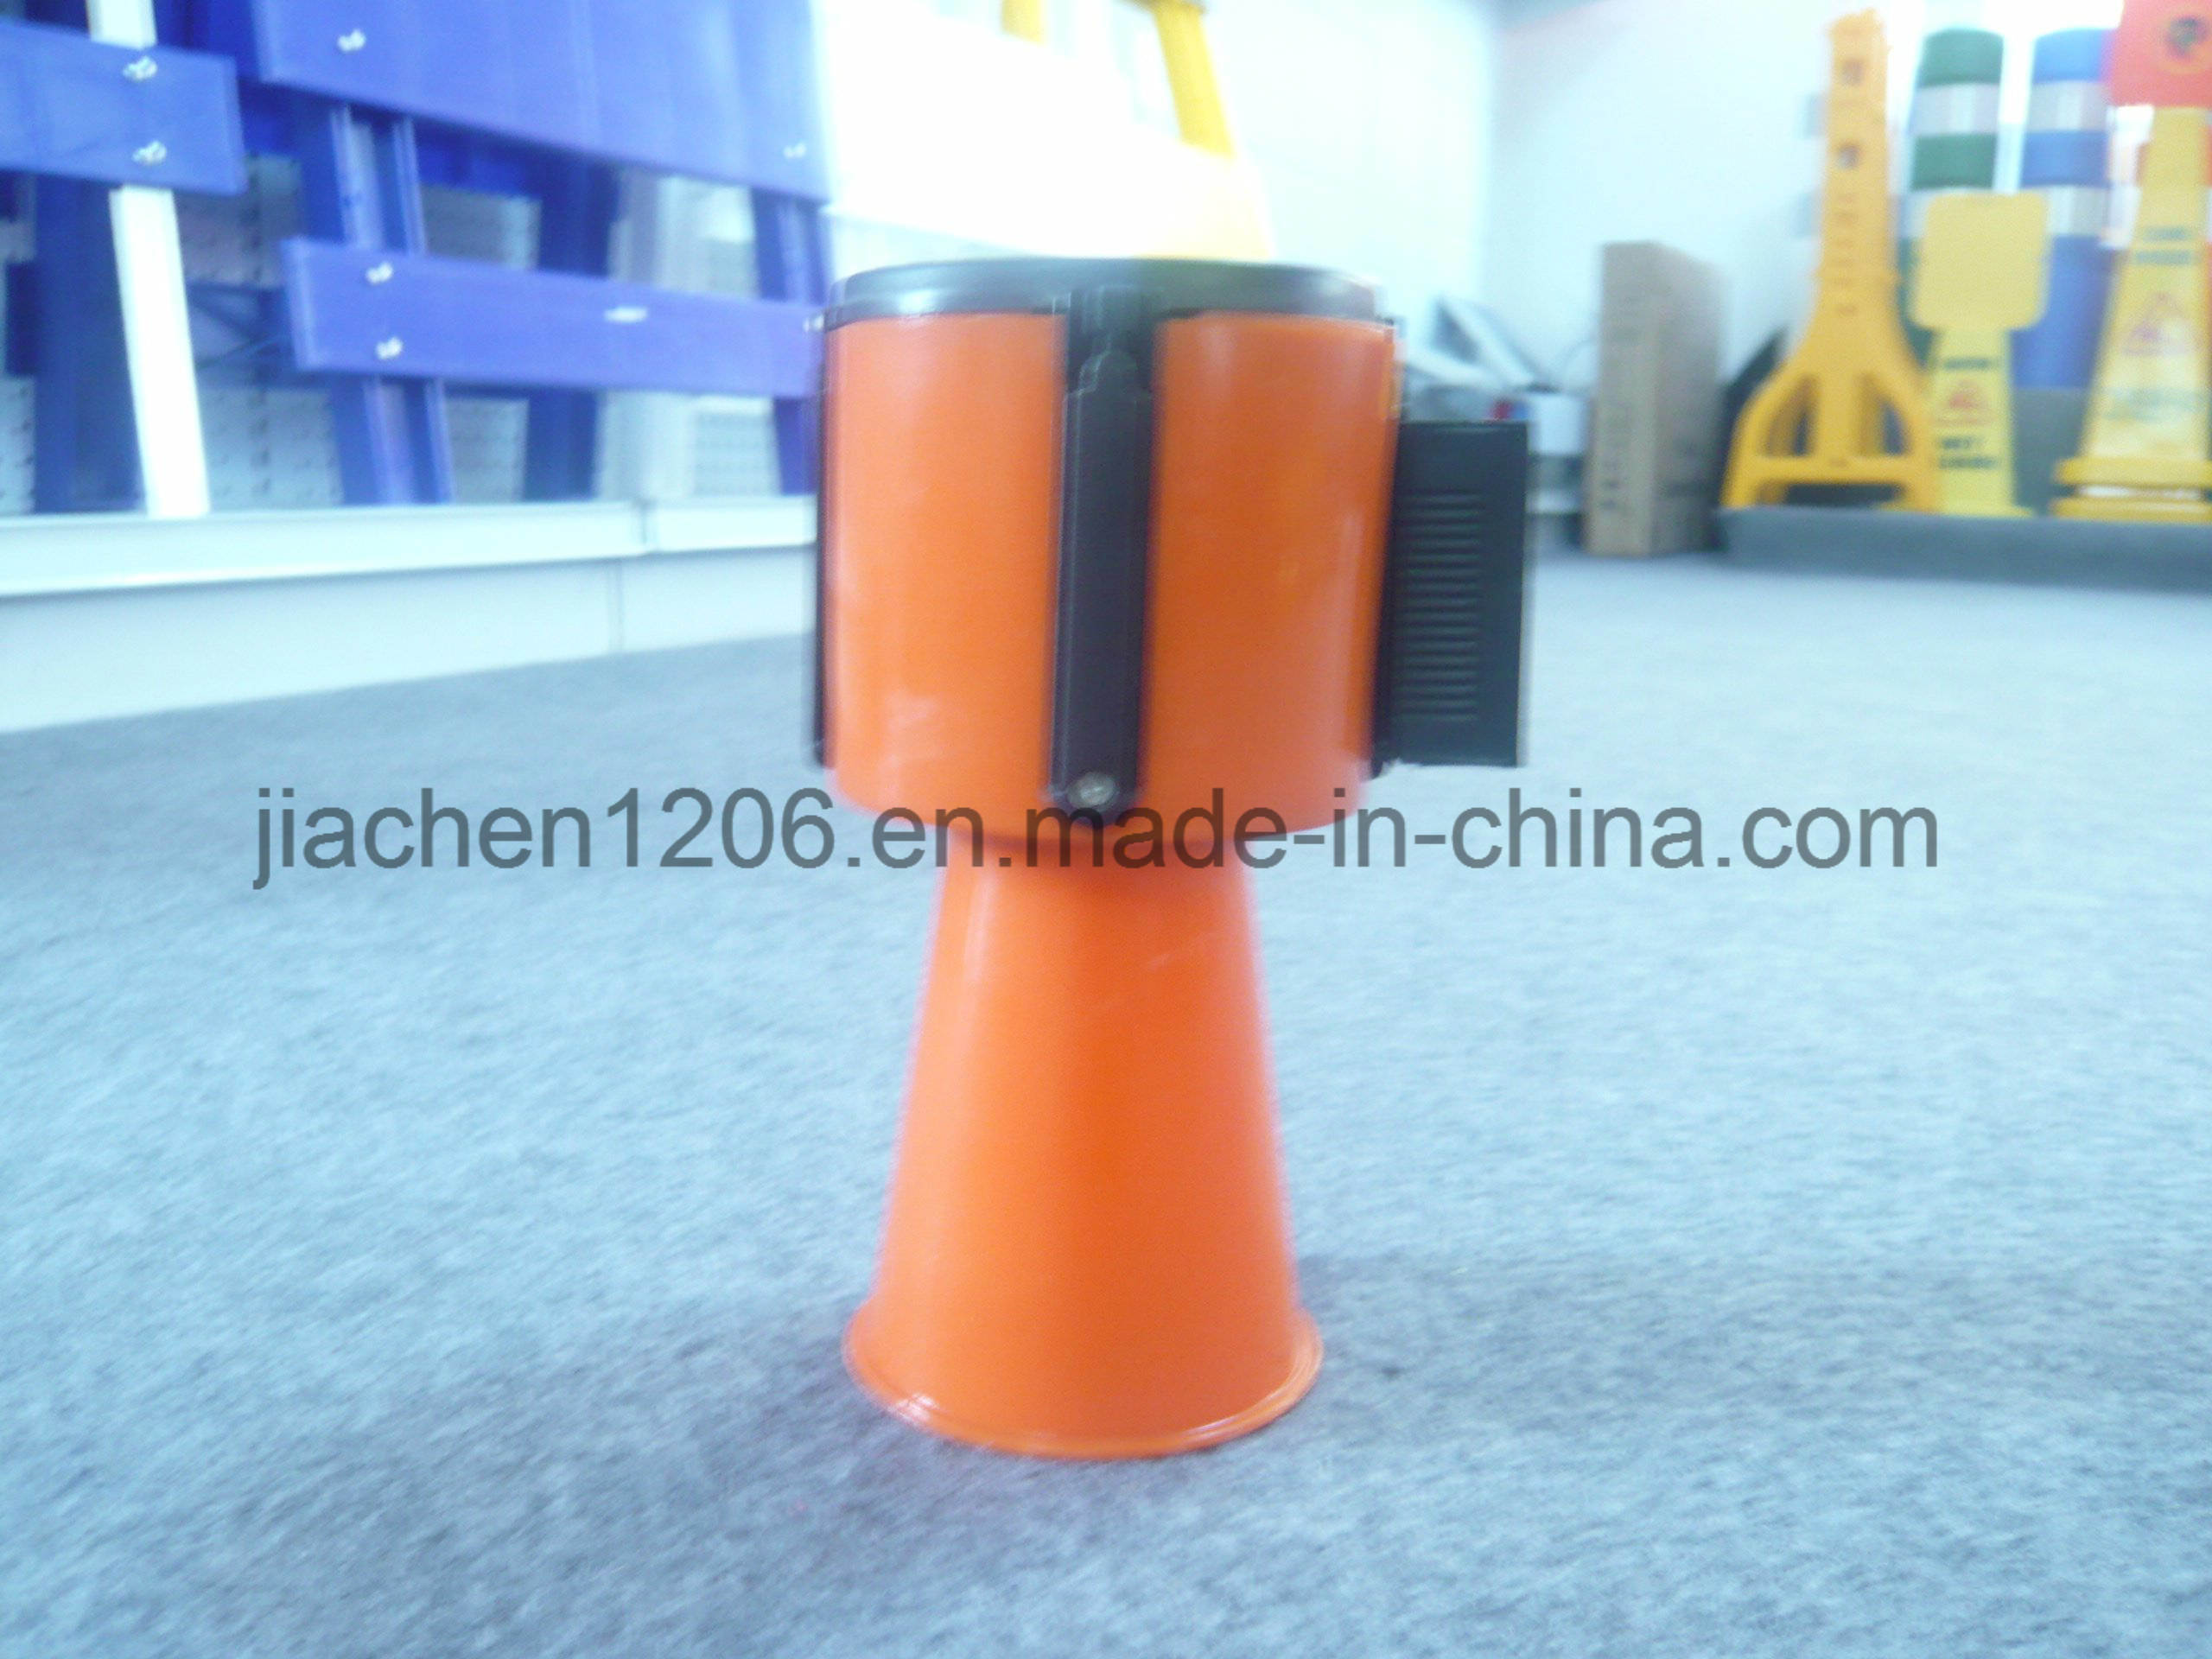 Jiachen High Quality Favorable Price PE Retractable Barrier pictures & photos